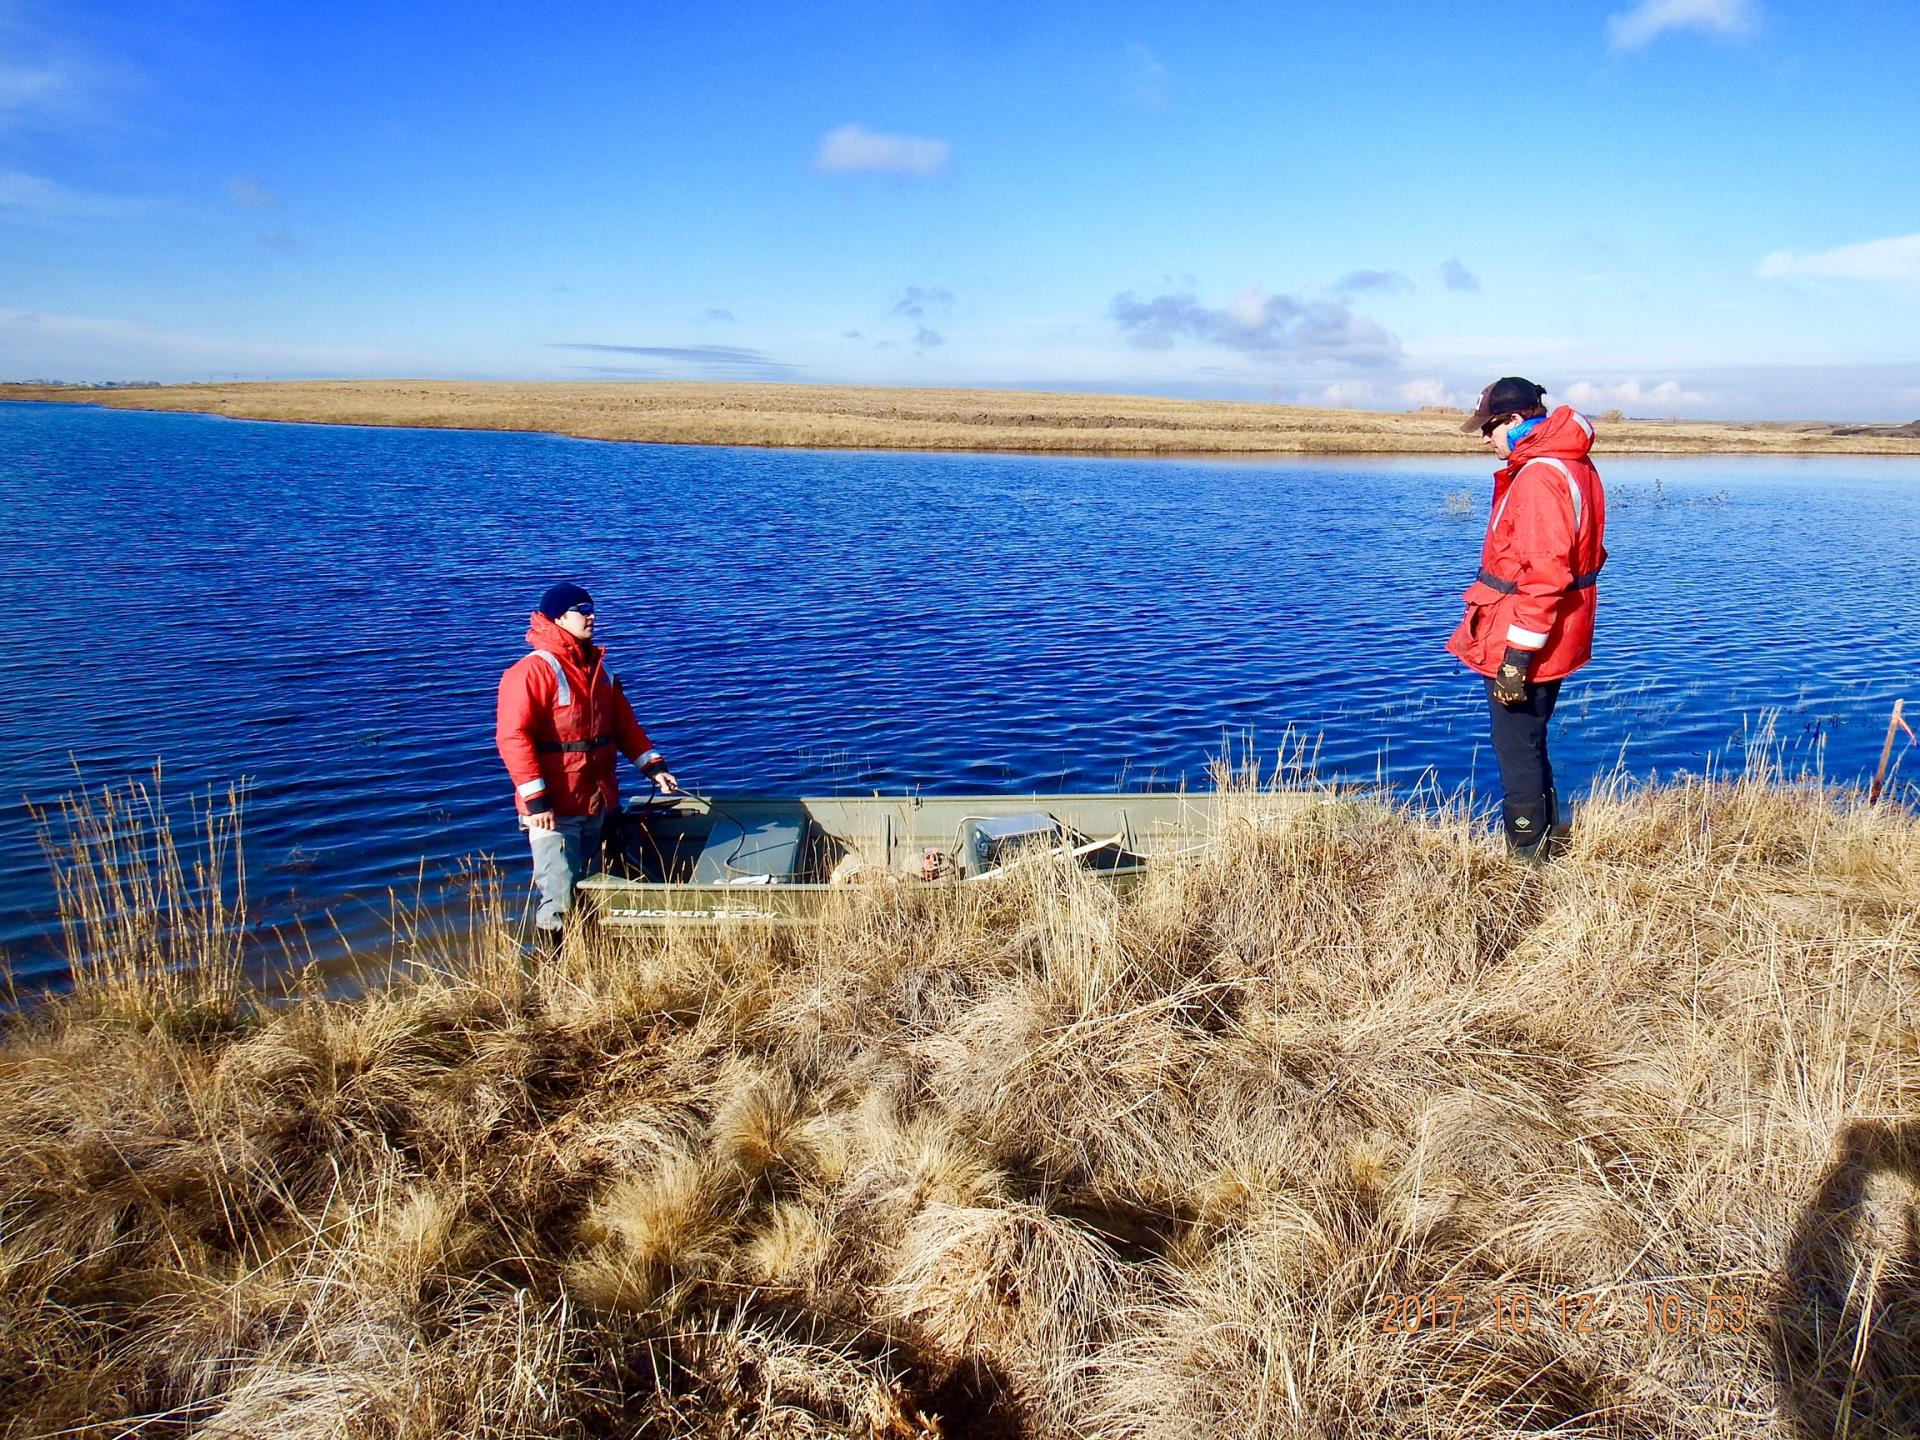 Alberta Conservation Checking Status of Trout Pond - October 2017